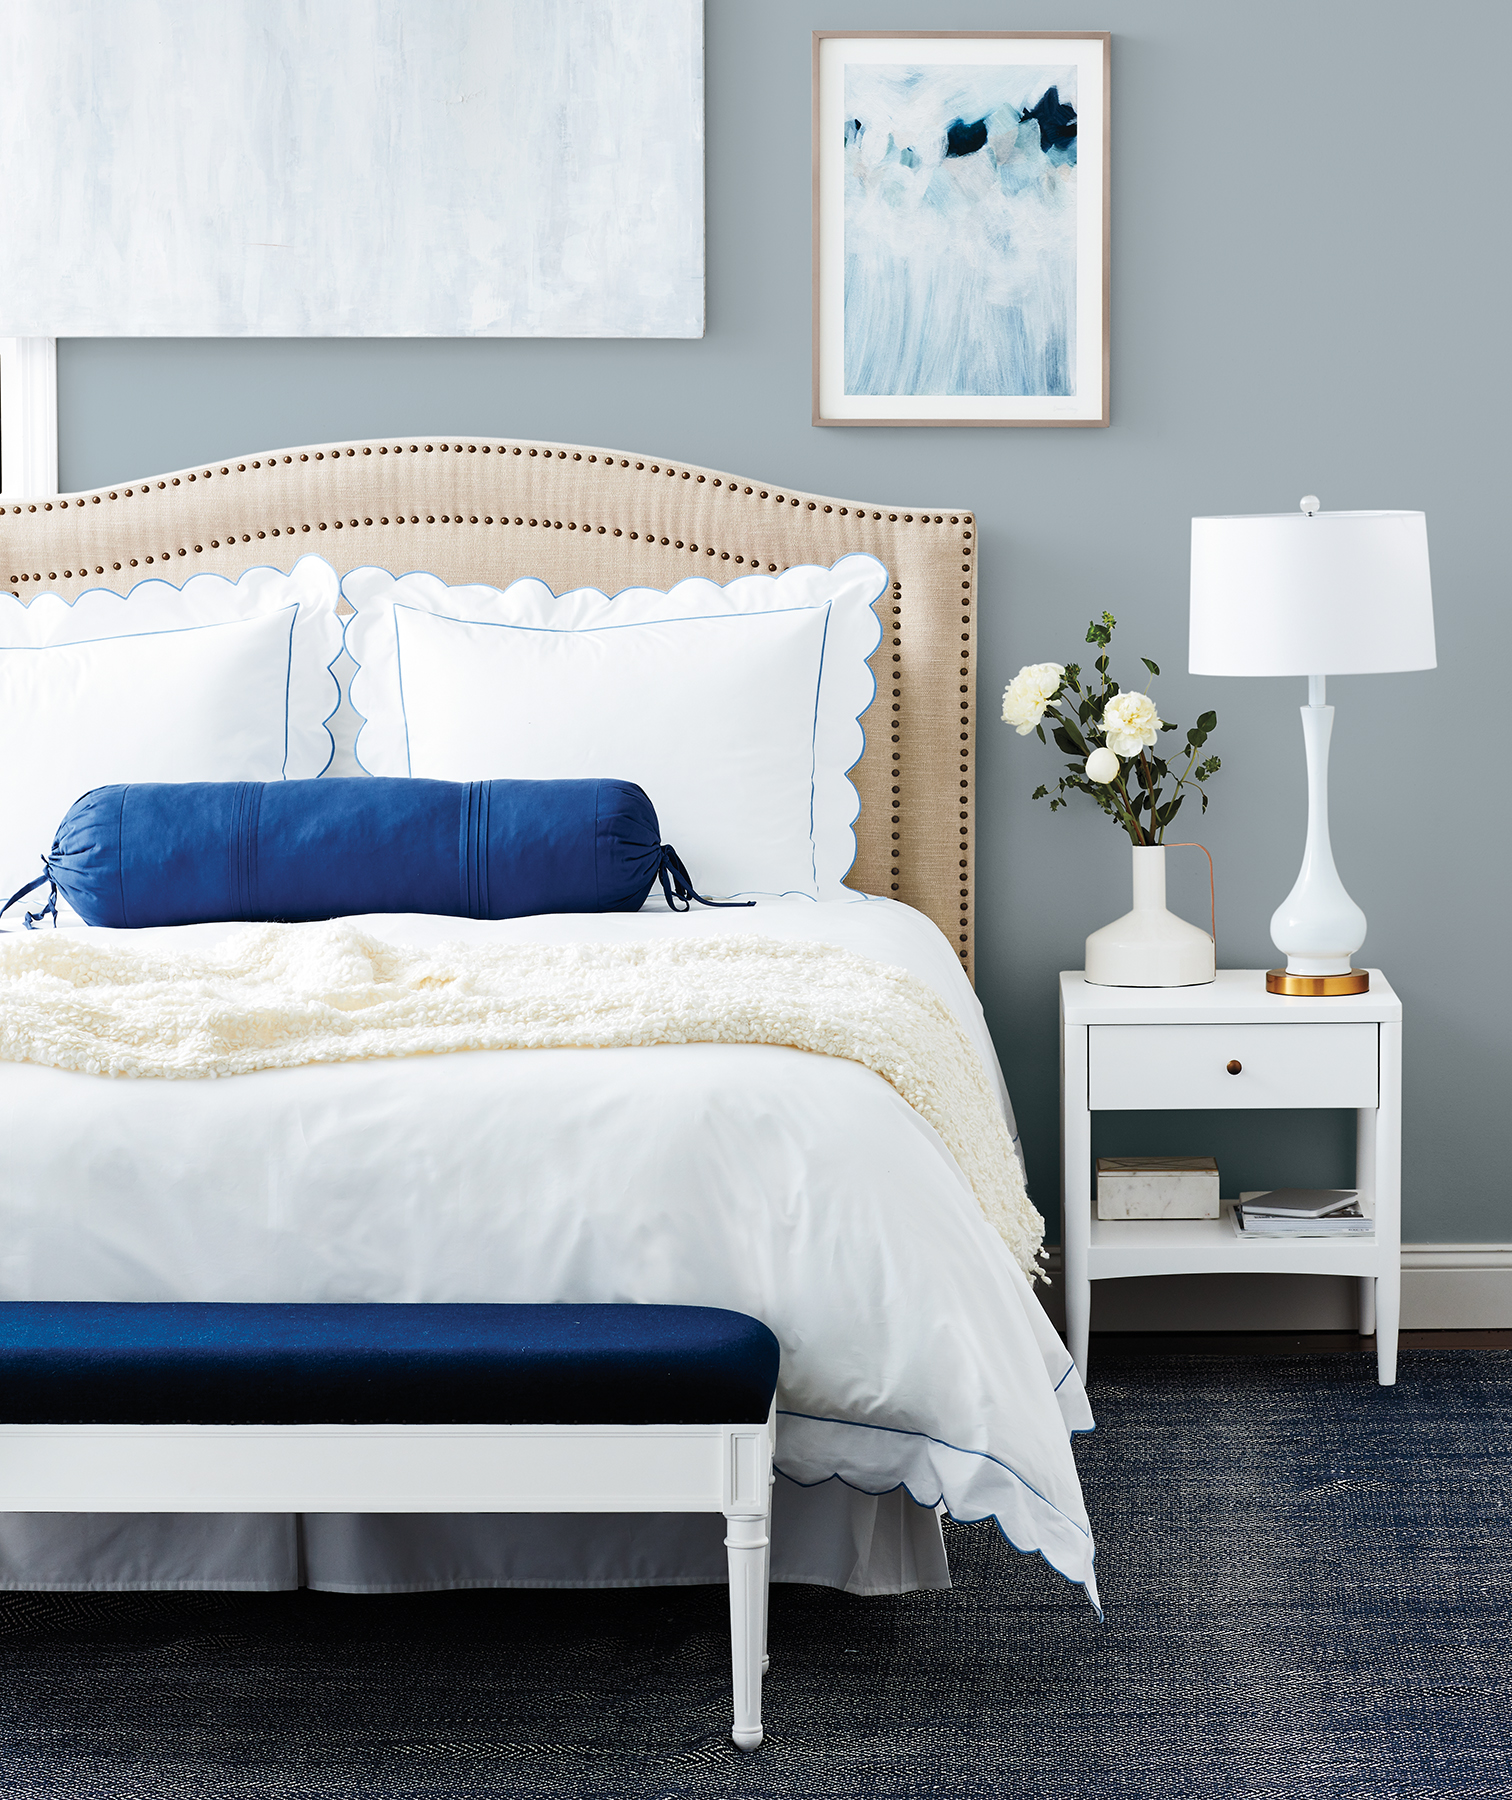 6 Things All of the Best-Decorated Bedrooms Have in Common